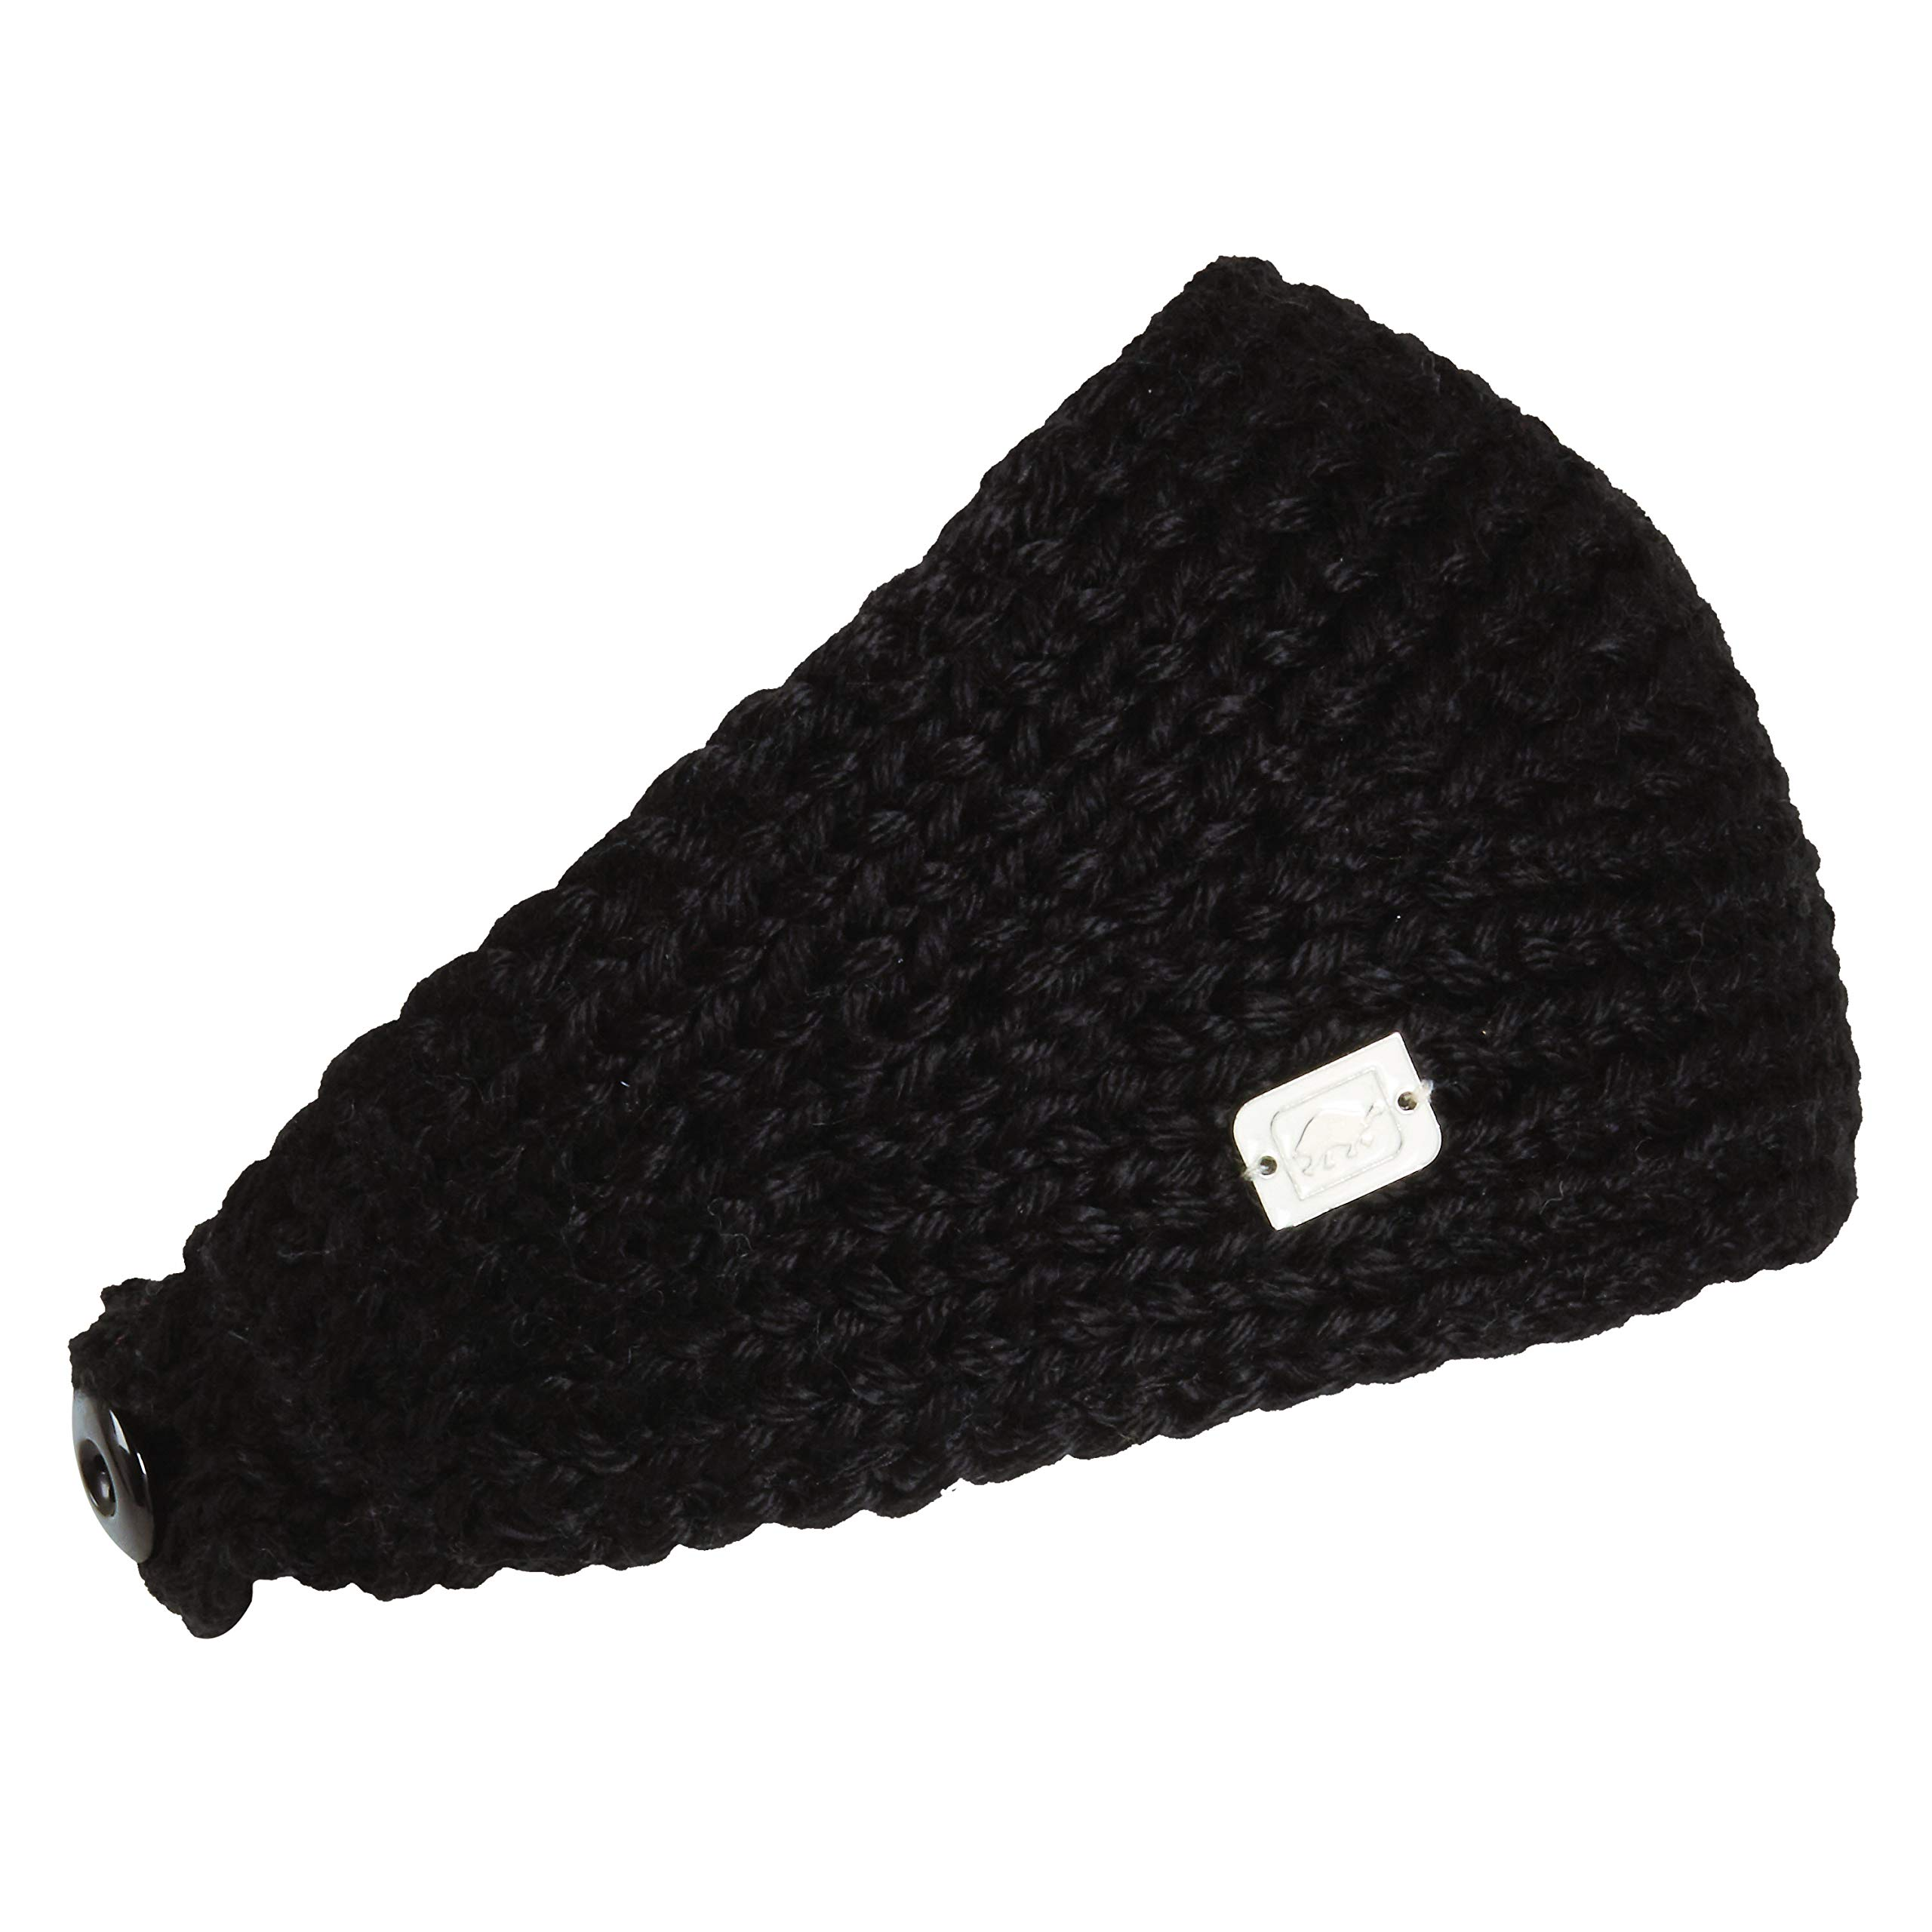 Turtle Fur Lifestyle - Oven Hand Knit Headband Fully-Lined w/Fleece Black